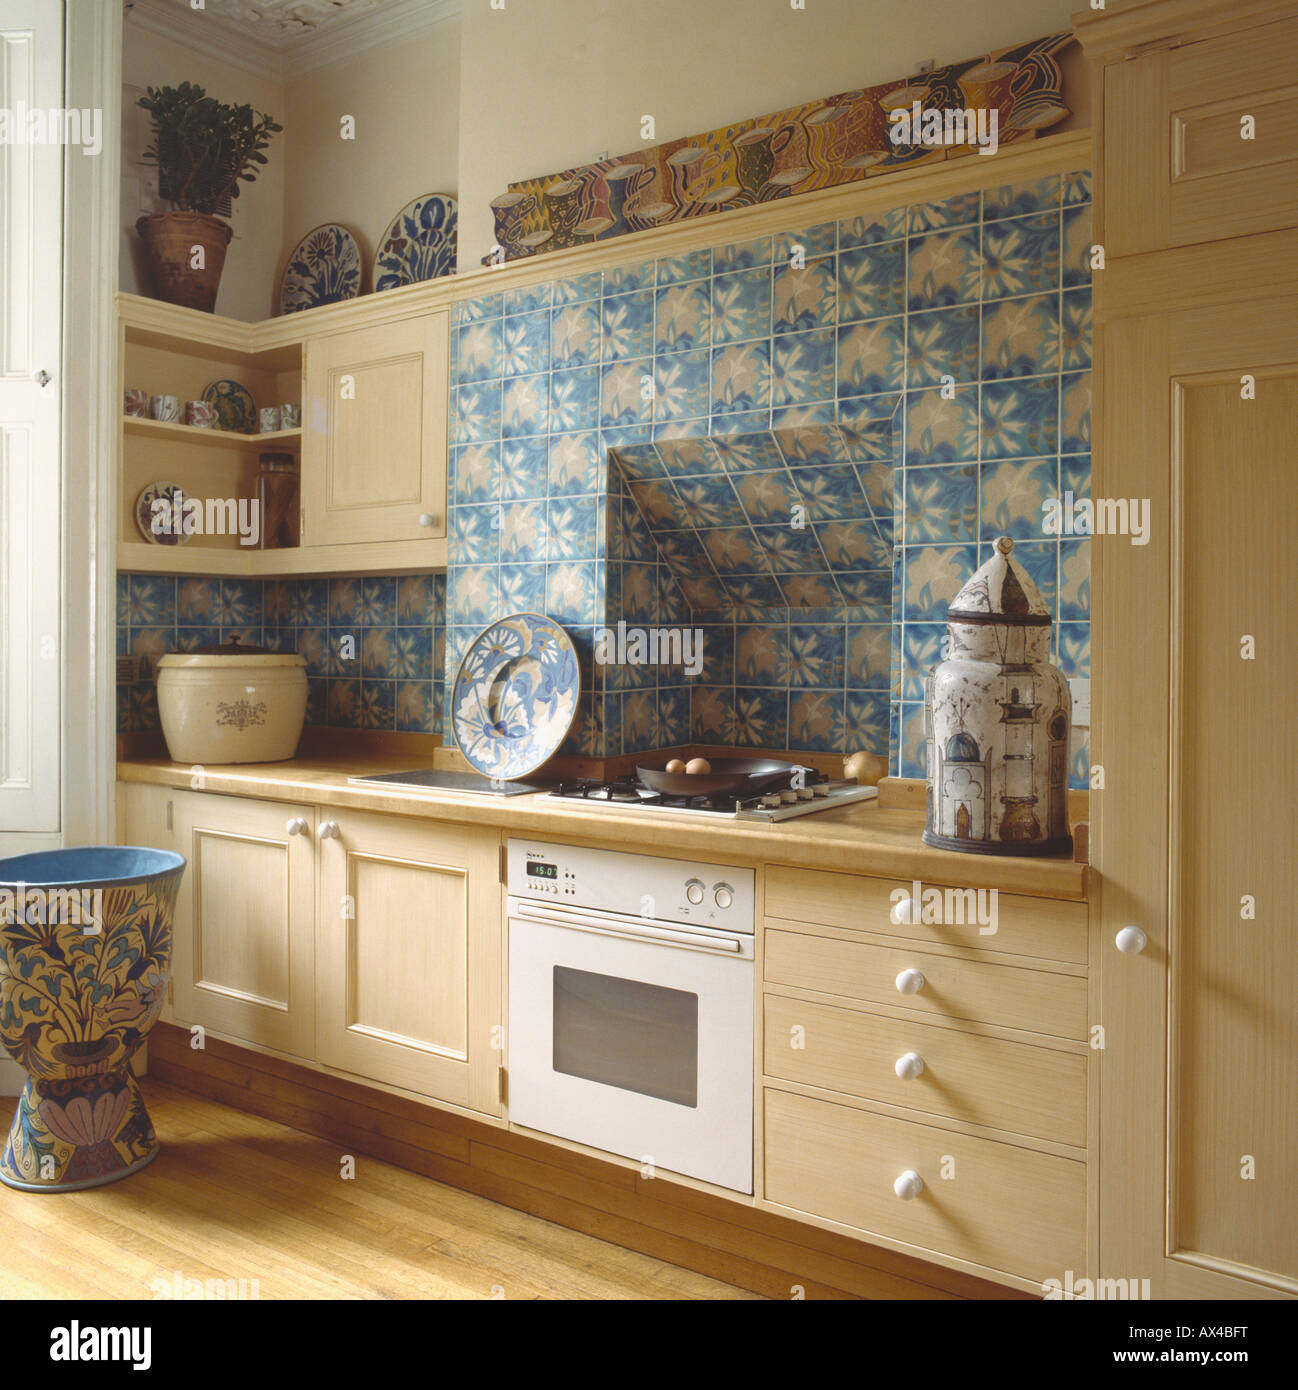 Blue Floral Tiles Above White Built In Oven In Neutral Eighties Kitchen With Large Ceramic Ornamental Pot